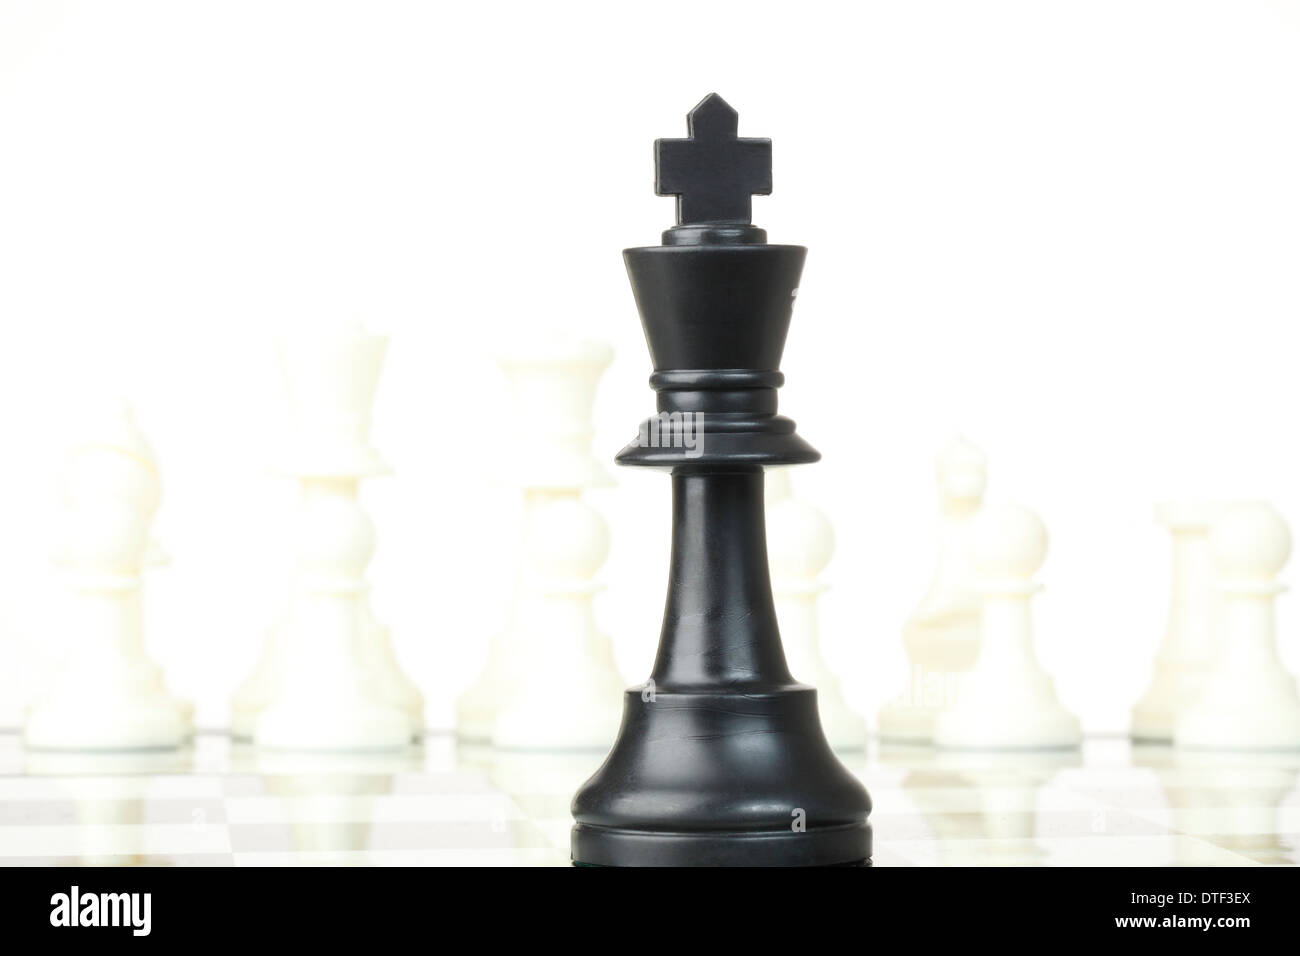 Closeup view of a black chess king - Stock Image